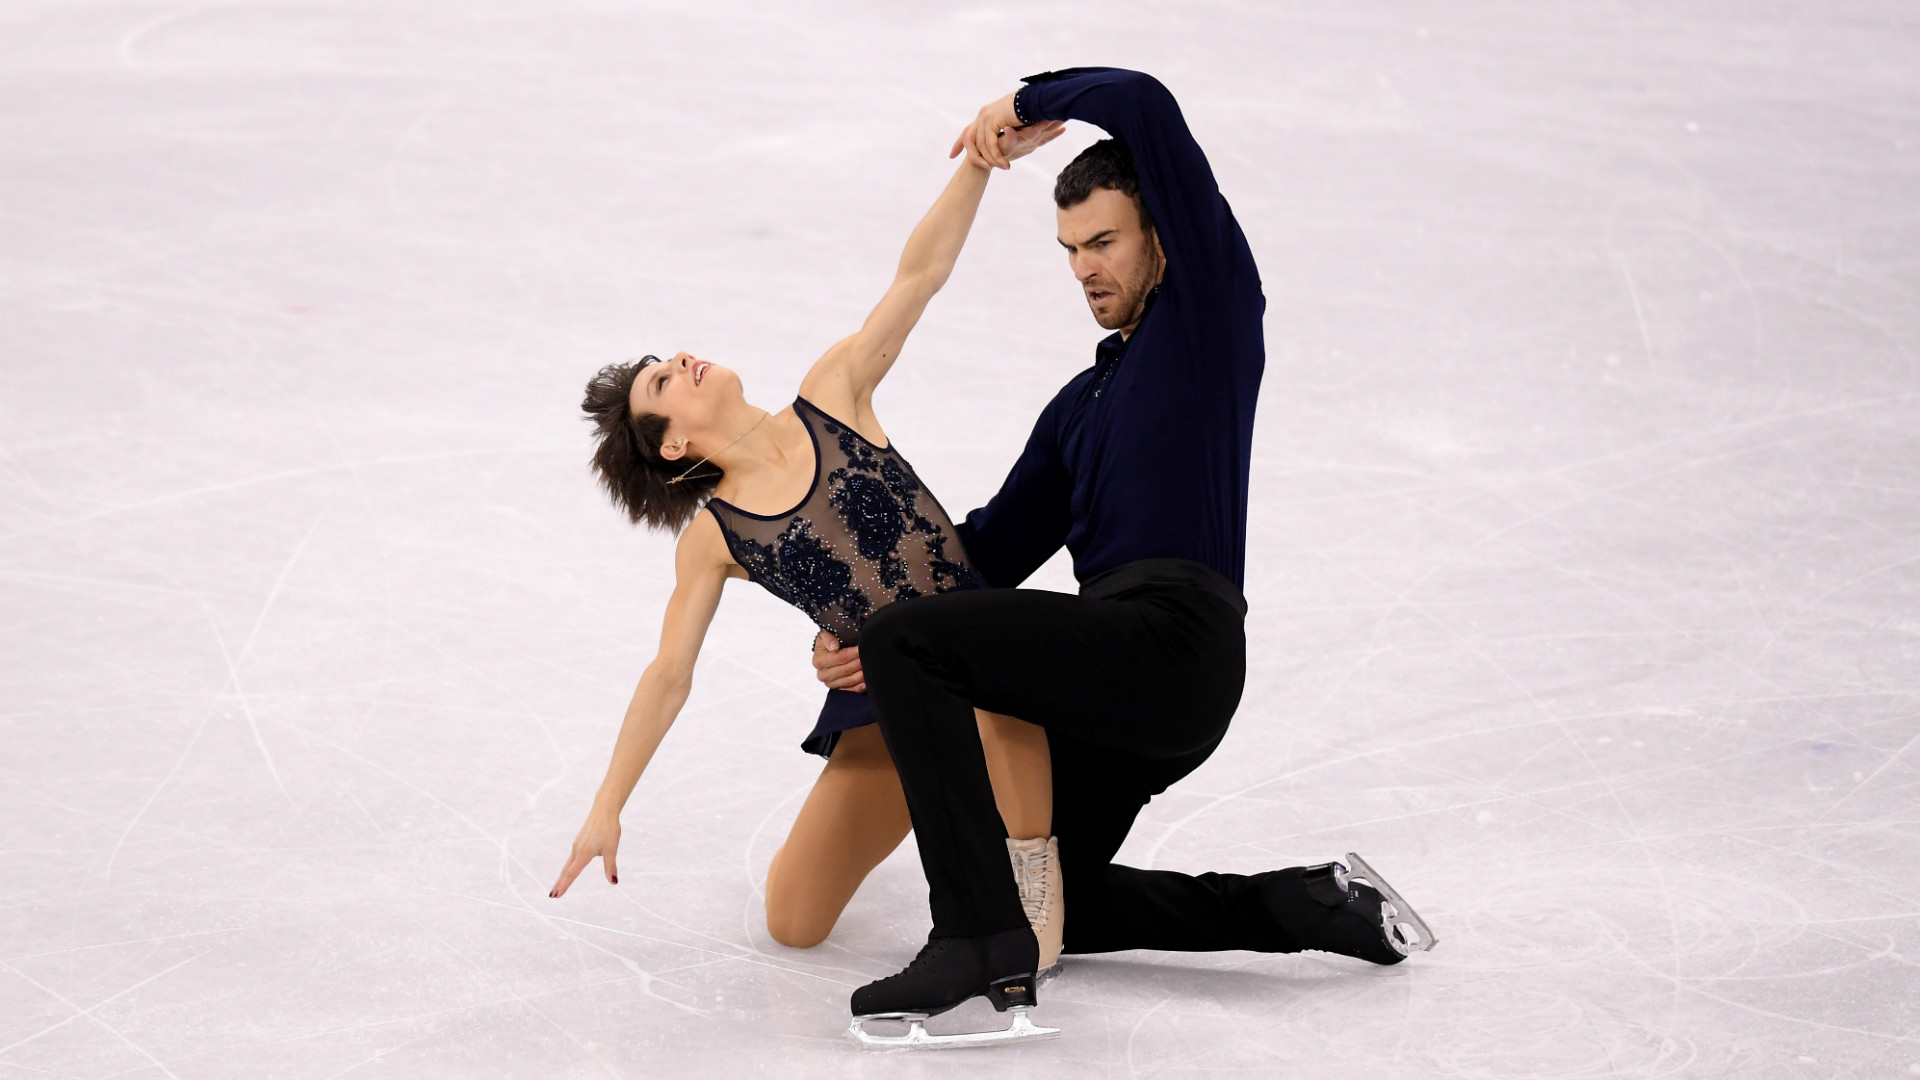 Adam Rippon & Eric Radford Won Medals At 2018 Winter Olympics